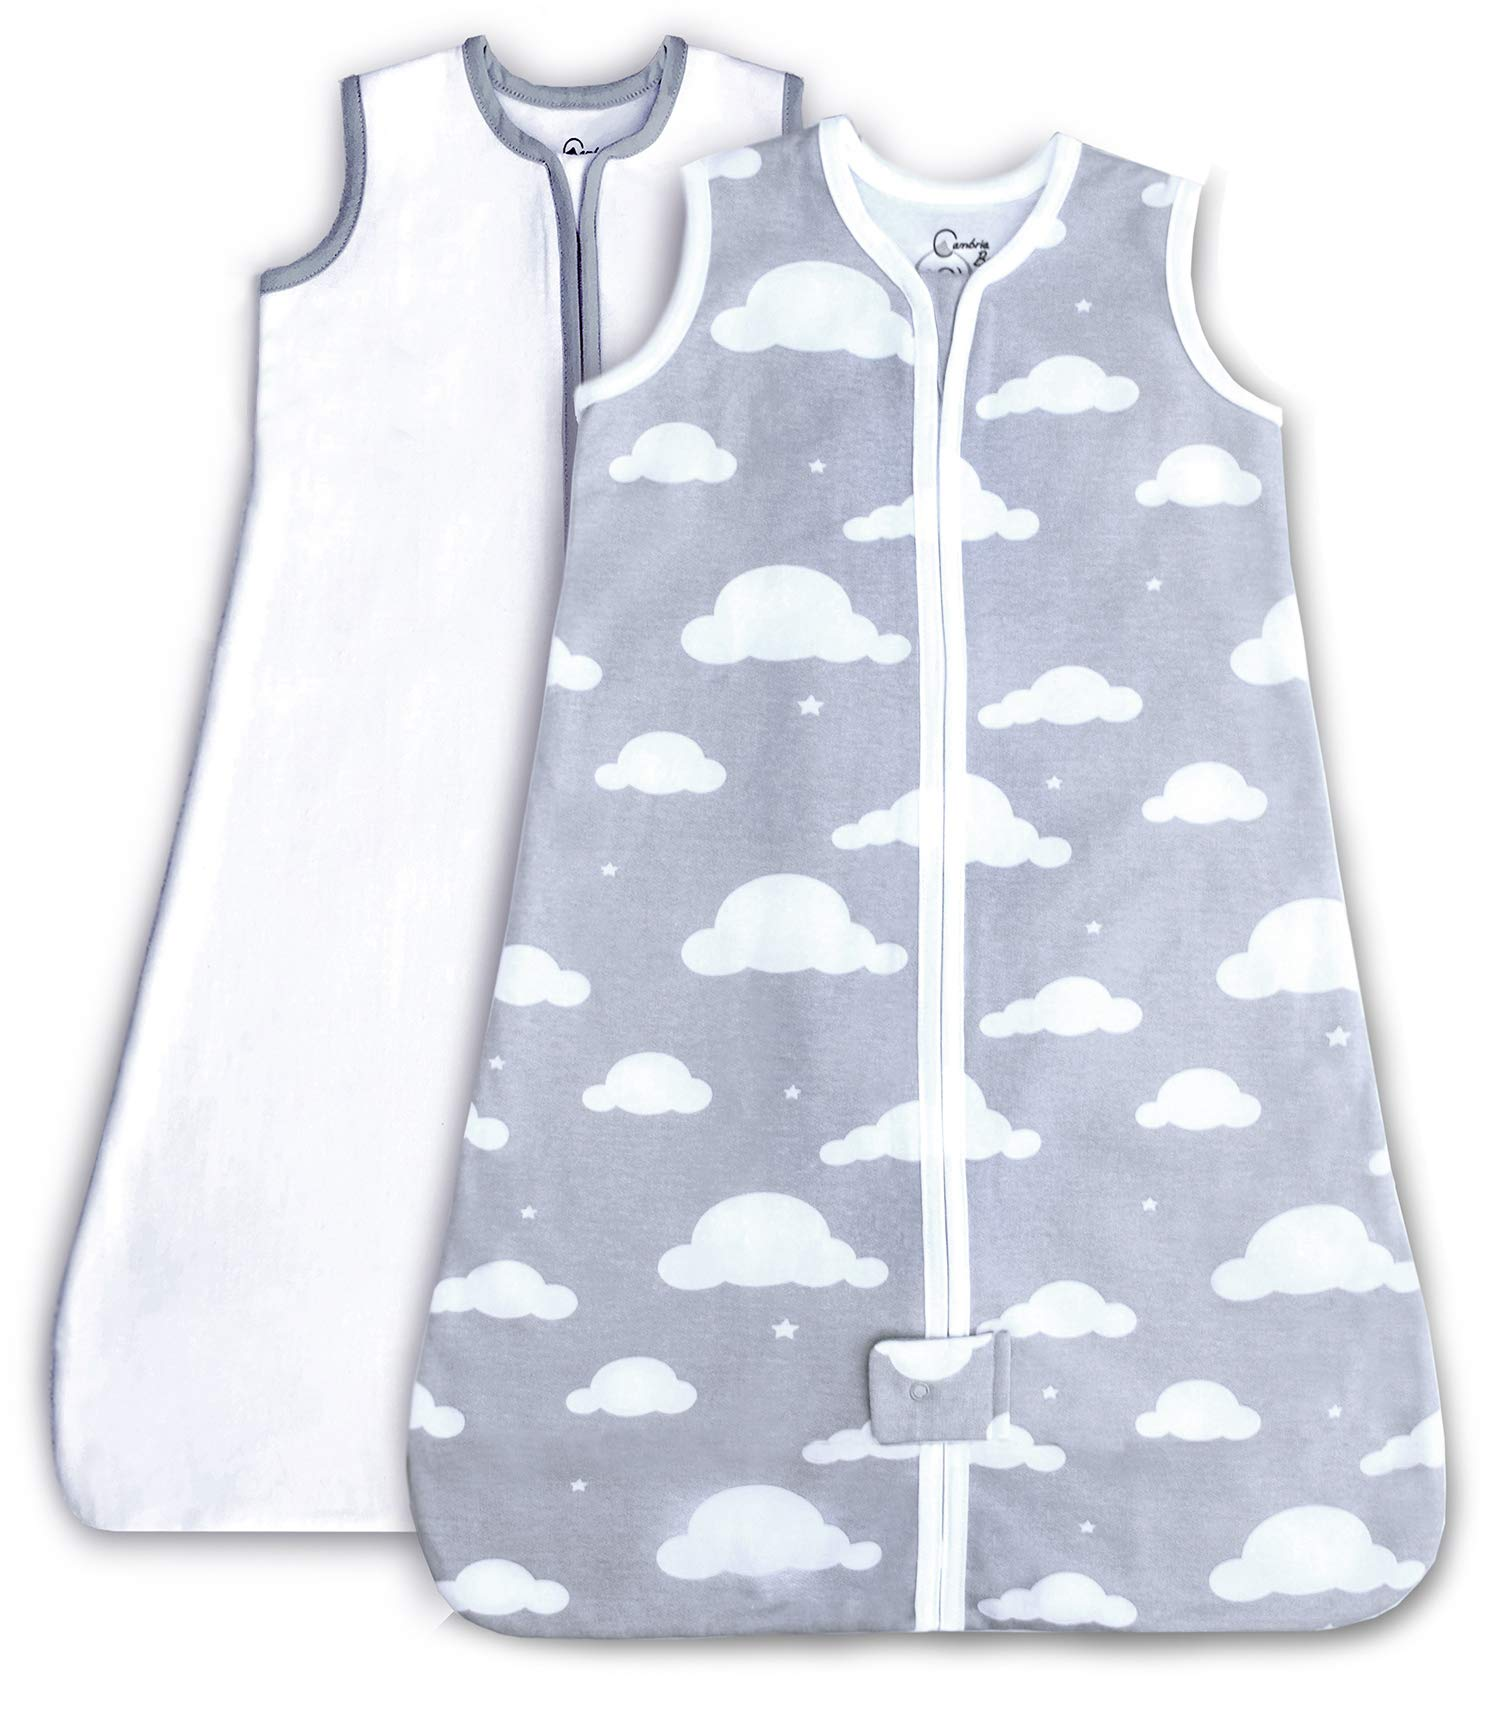 Cambria Baby 100% Organic Cotton Sleep Sack. Cozy and Safe, with Bottom to Top Zipper for Easy Diaper Changes. in White and Gray Cloud Pattern for Girls and Boys. 2 Pack (Medium)